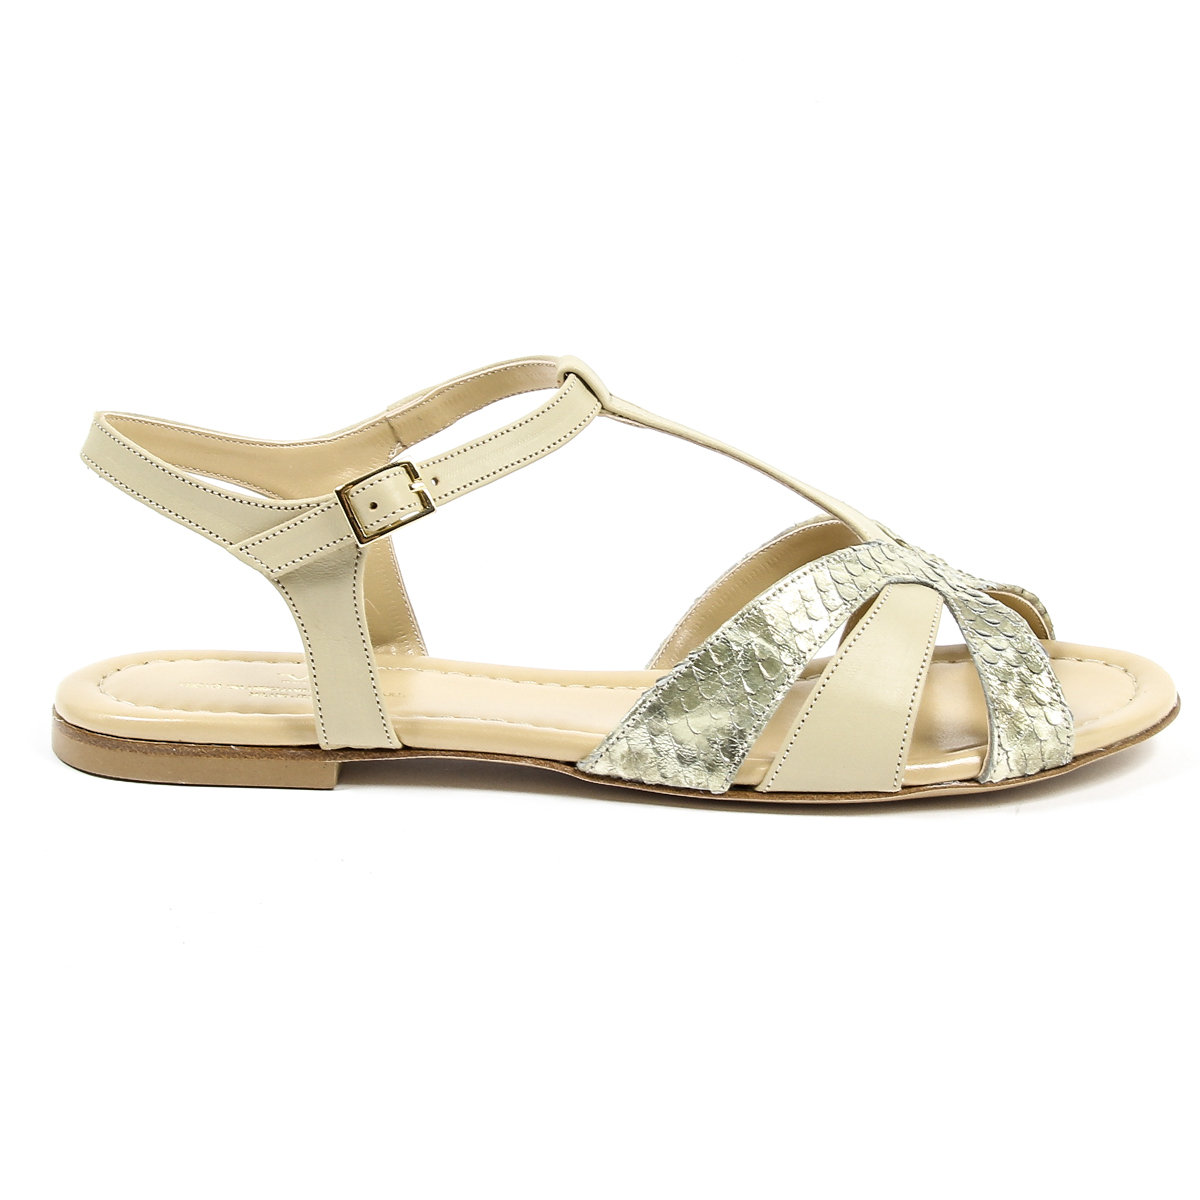 Primary image for V 1969 Italia Womens Flat Sandal